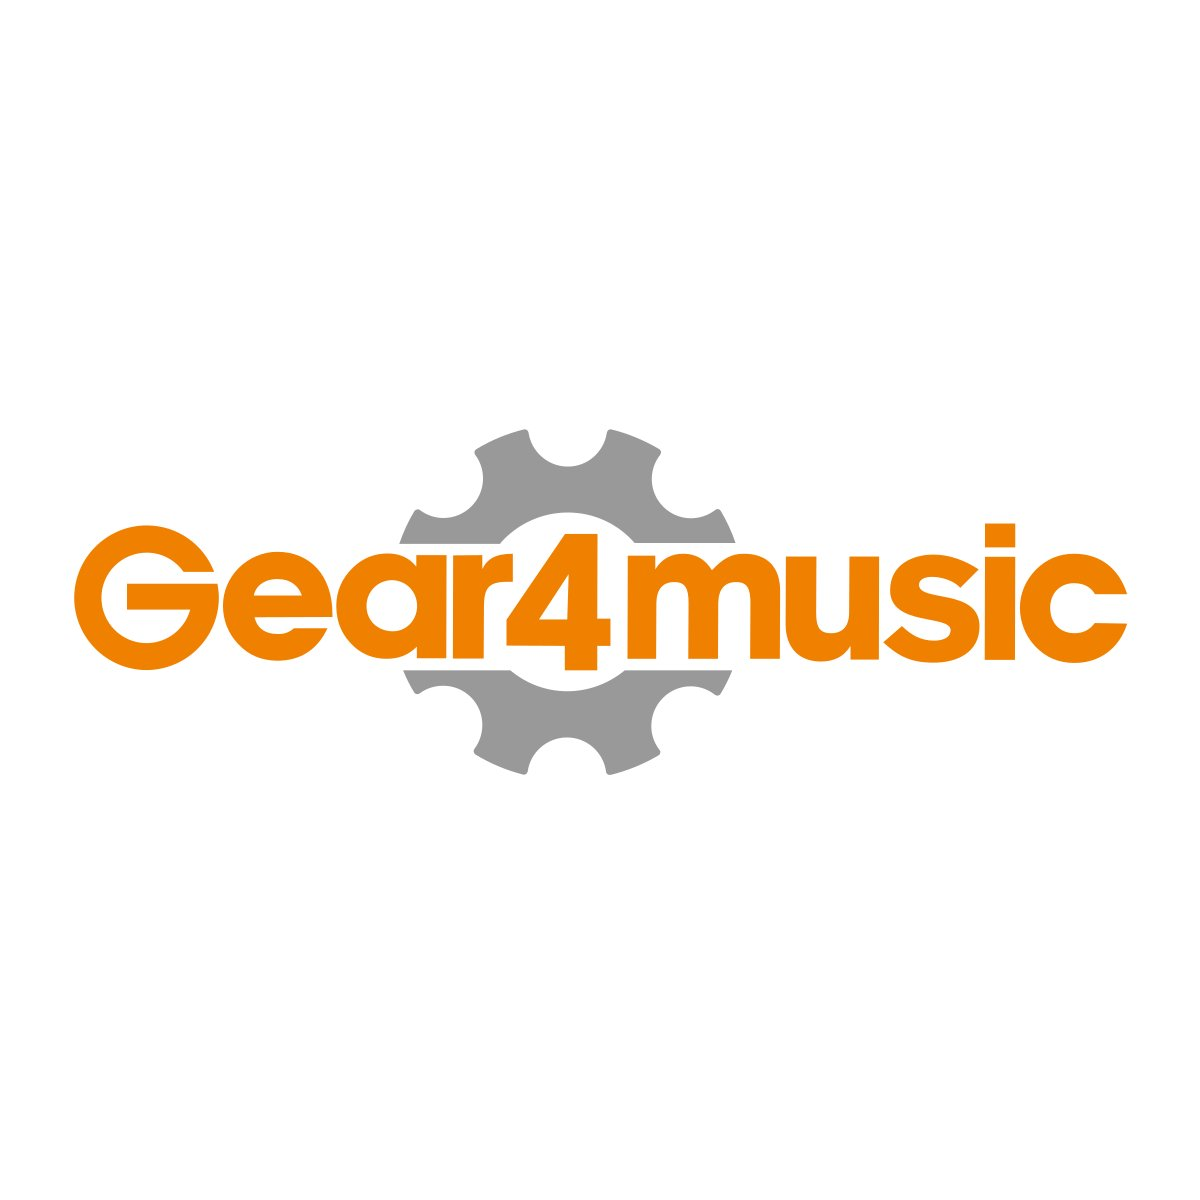 3-teiliges Mikrofonset von Gear4music